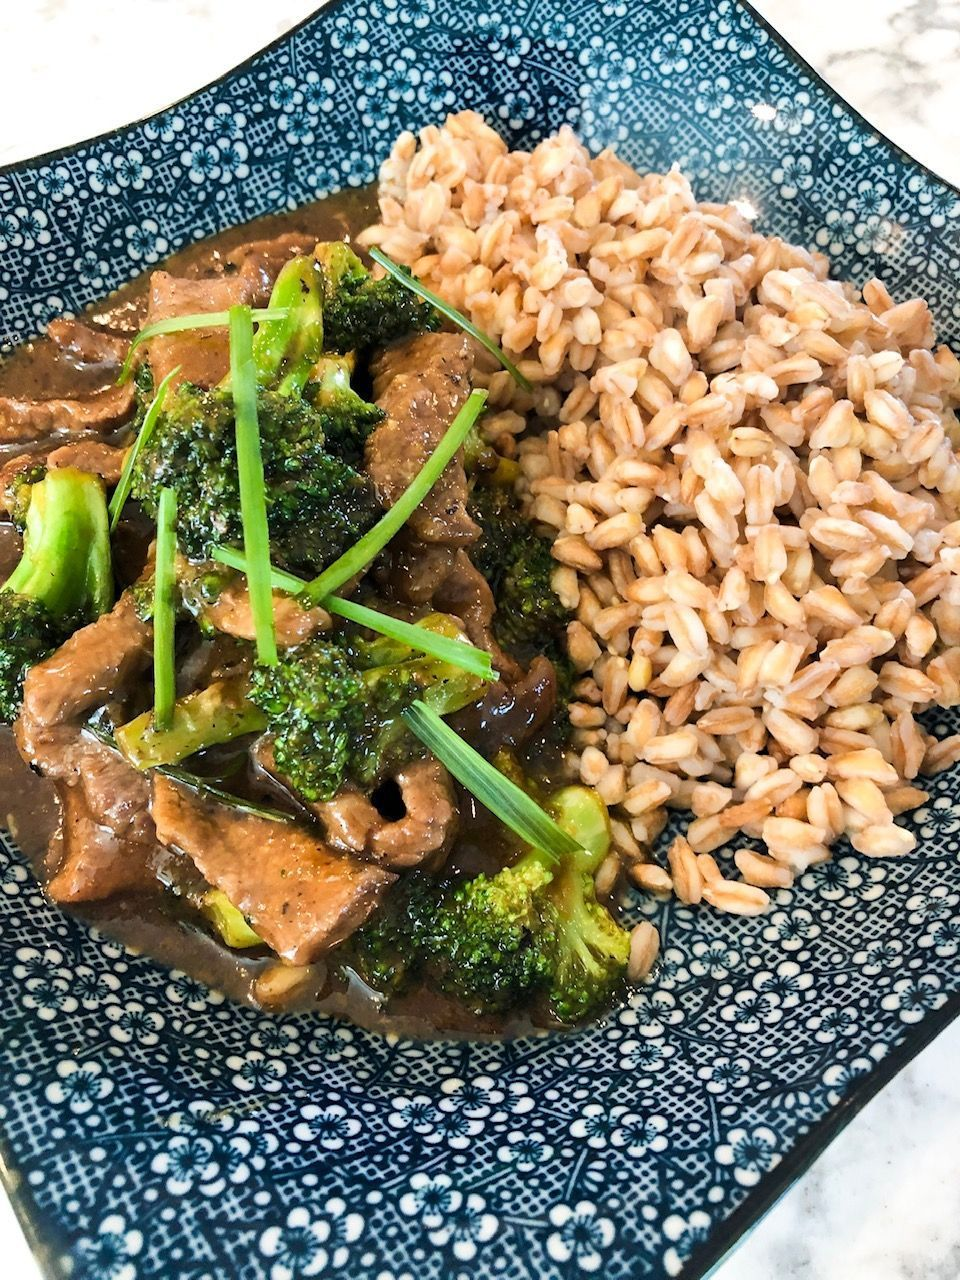 Quick and Easy Beef and Broccoli! #beefandbroccoli Quick and Easy Beef and Broccoli! #beefandbroccoli Quick and Easy Beef and Broccoli! #beefandbroccoli Quick and Easy Beef and Broccoli! #sirloinsteakrecipeshealthy